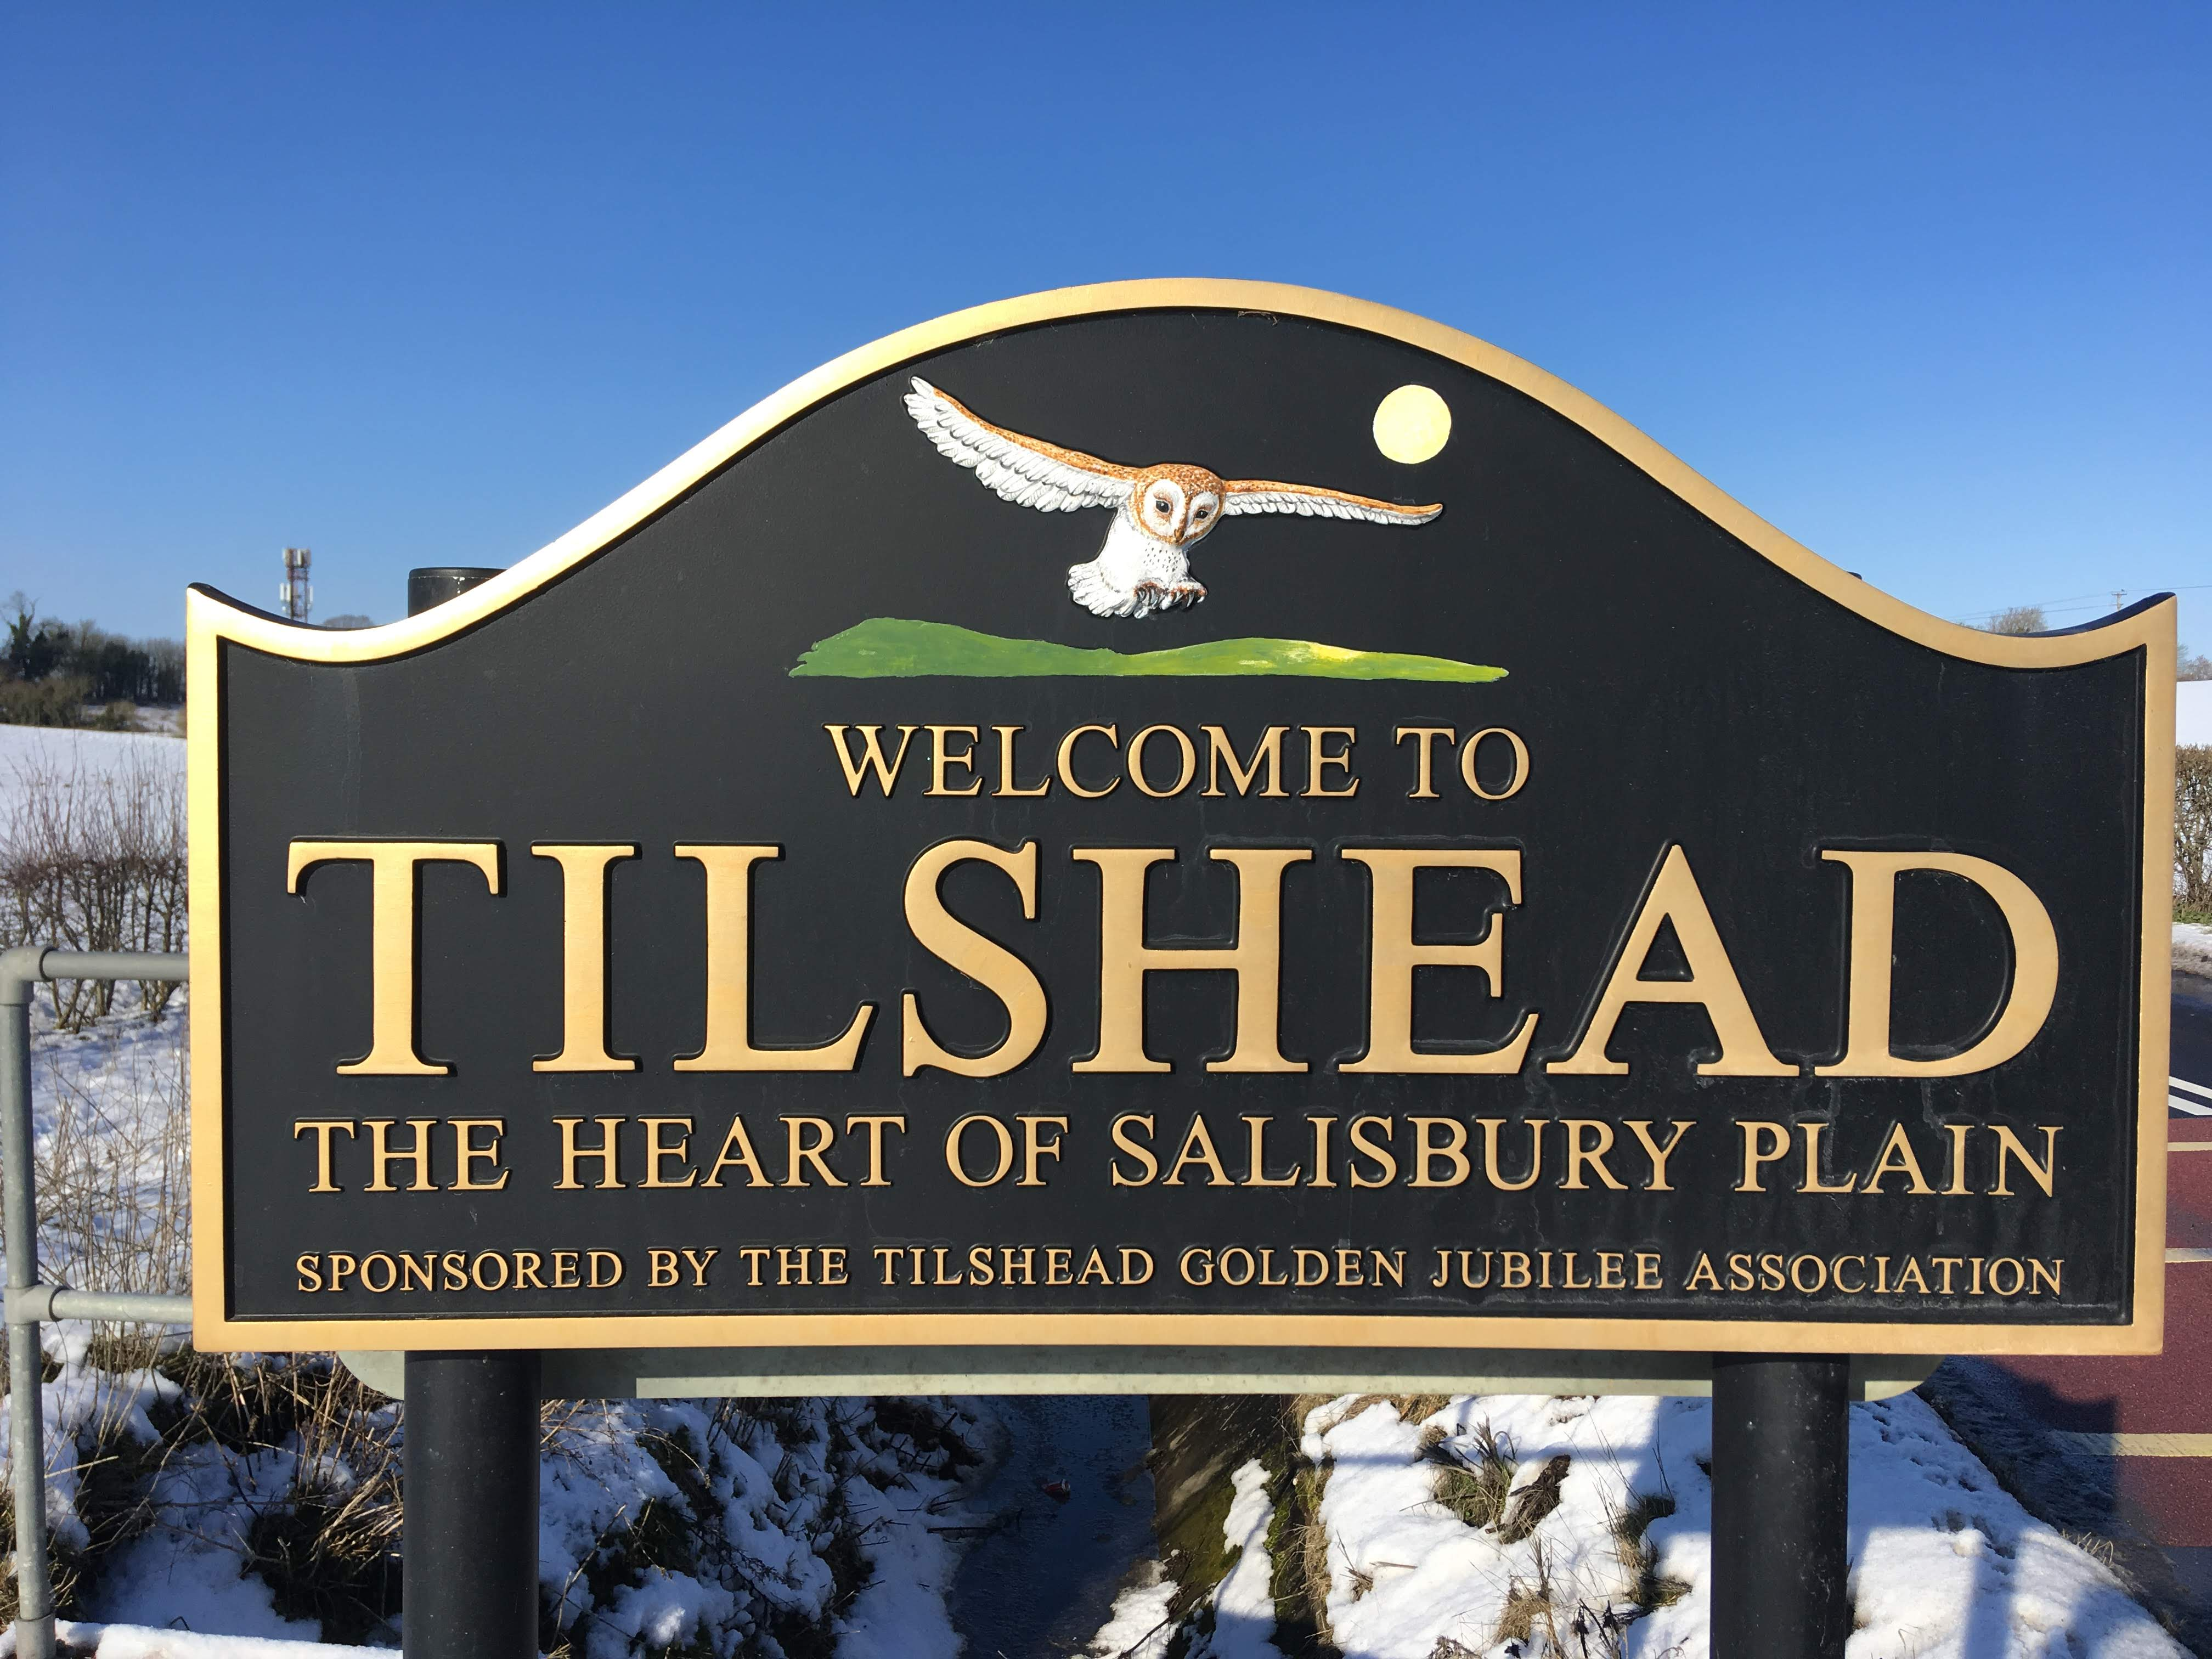 Sign on entering Tilshead reads 'Welcome to Tilshead, the heart of Salisbury Plain, sponsored by the Tilshead Golden Jubilee Association'